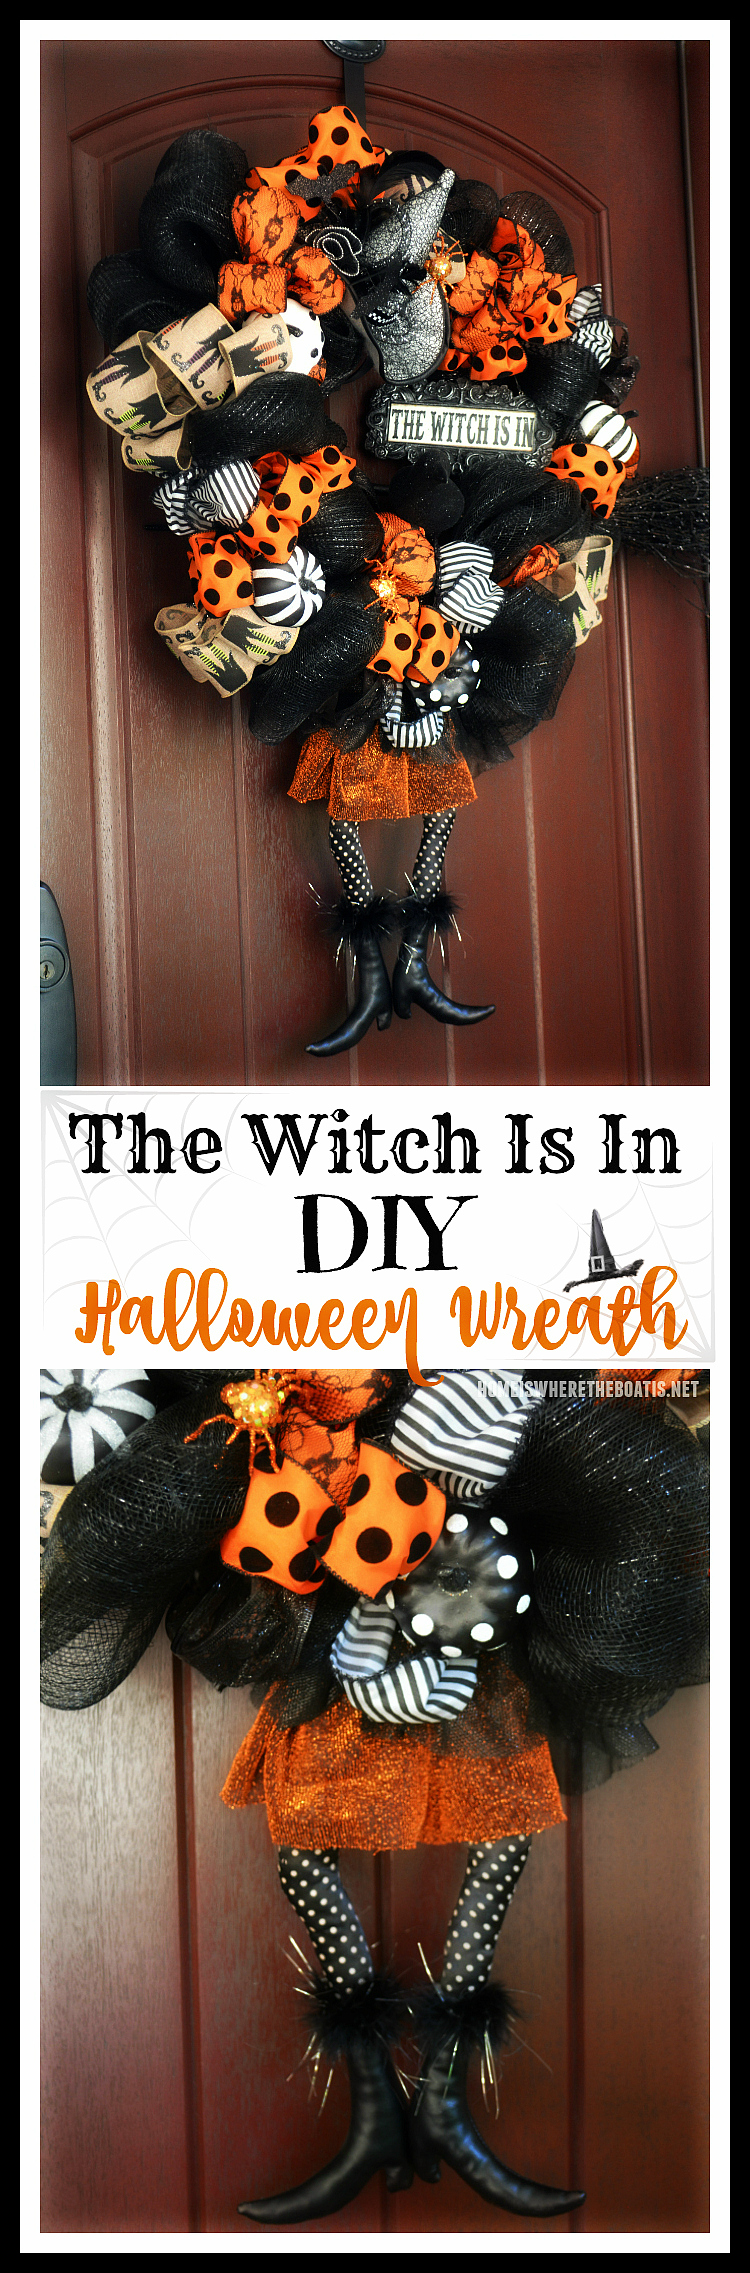 The Witch Is In: DIY Halloween Wreath! Scare Up a wreath for a witchy welcome for Halloween ! | ©homeiswheretheboatis.net #Halloween #wreath